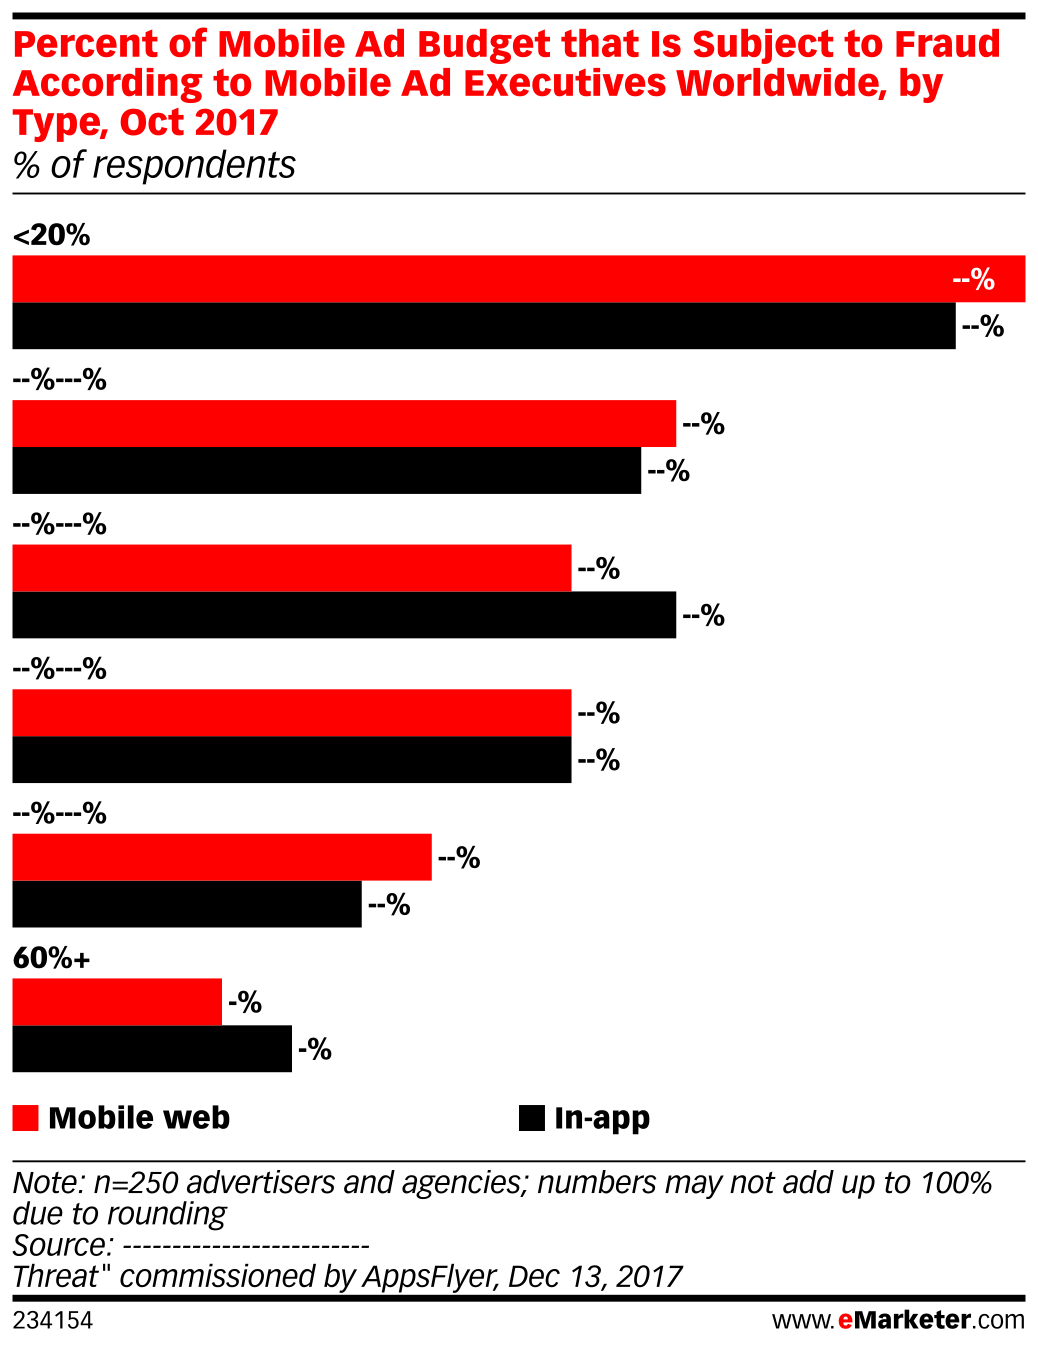 Percent of Mobile Ad Budget that Is Subject to Fraud According to Mobile Ad Executives Worldwide, by Type, Oct 2017 (% of respondents)